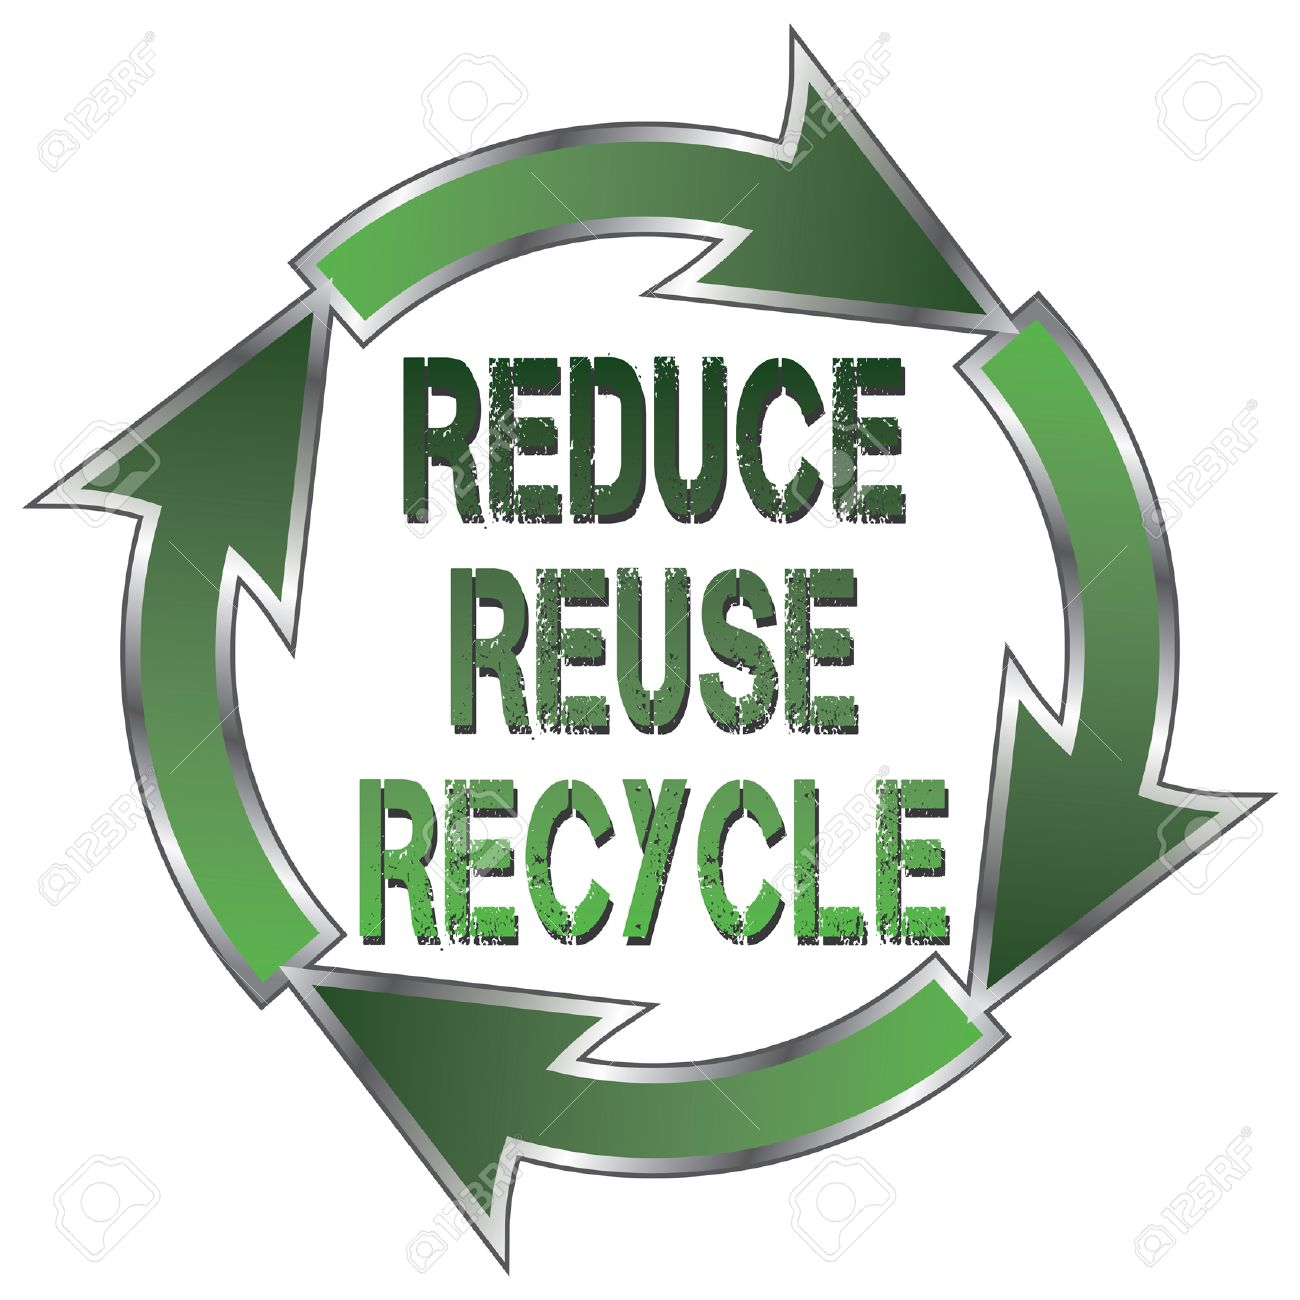 Reduce Reuse Recycle Is An Illustration Of A Recycle Symbol With